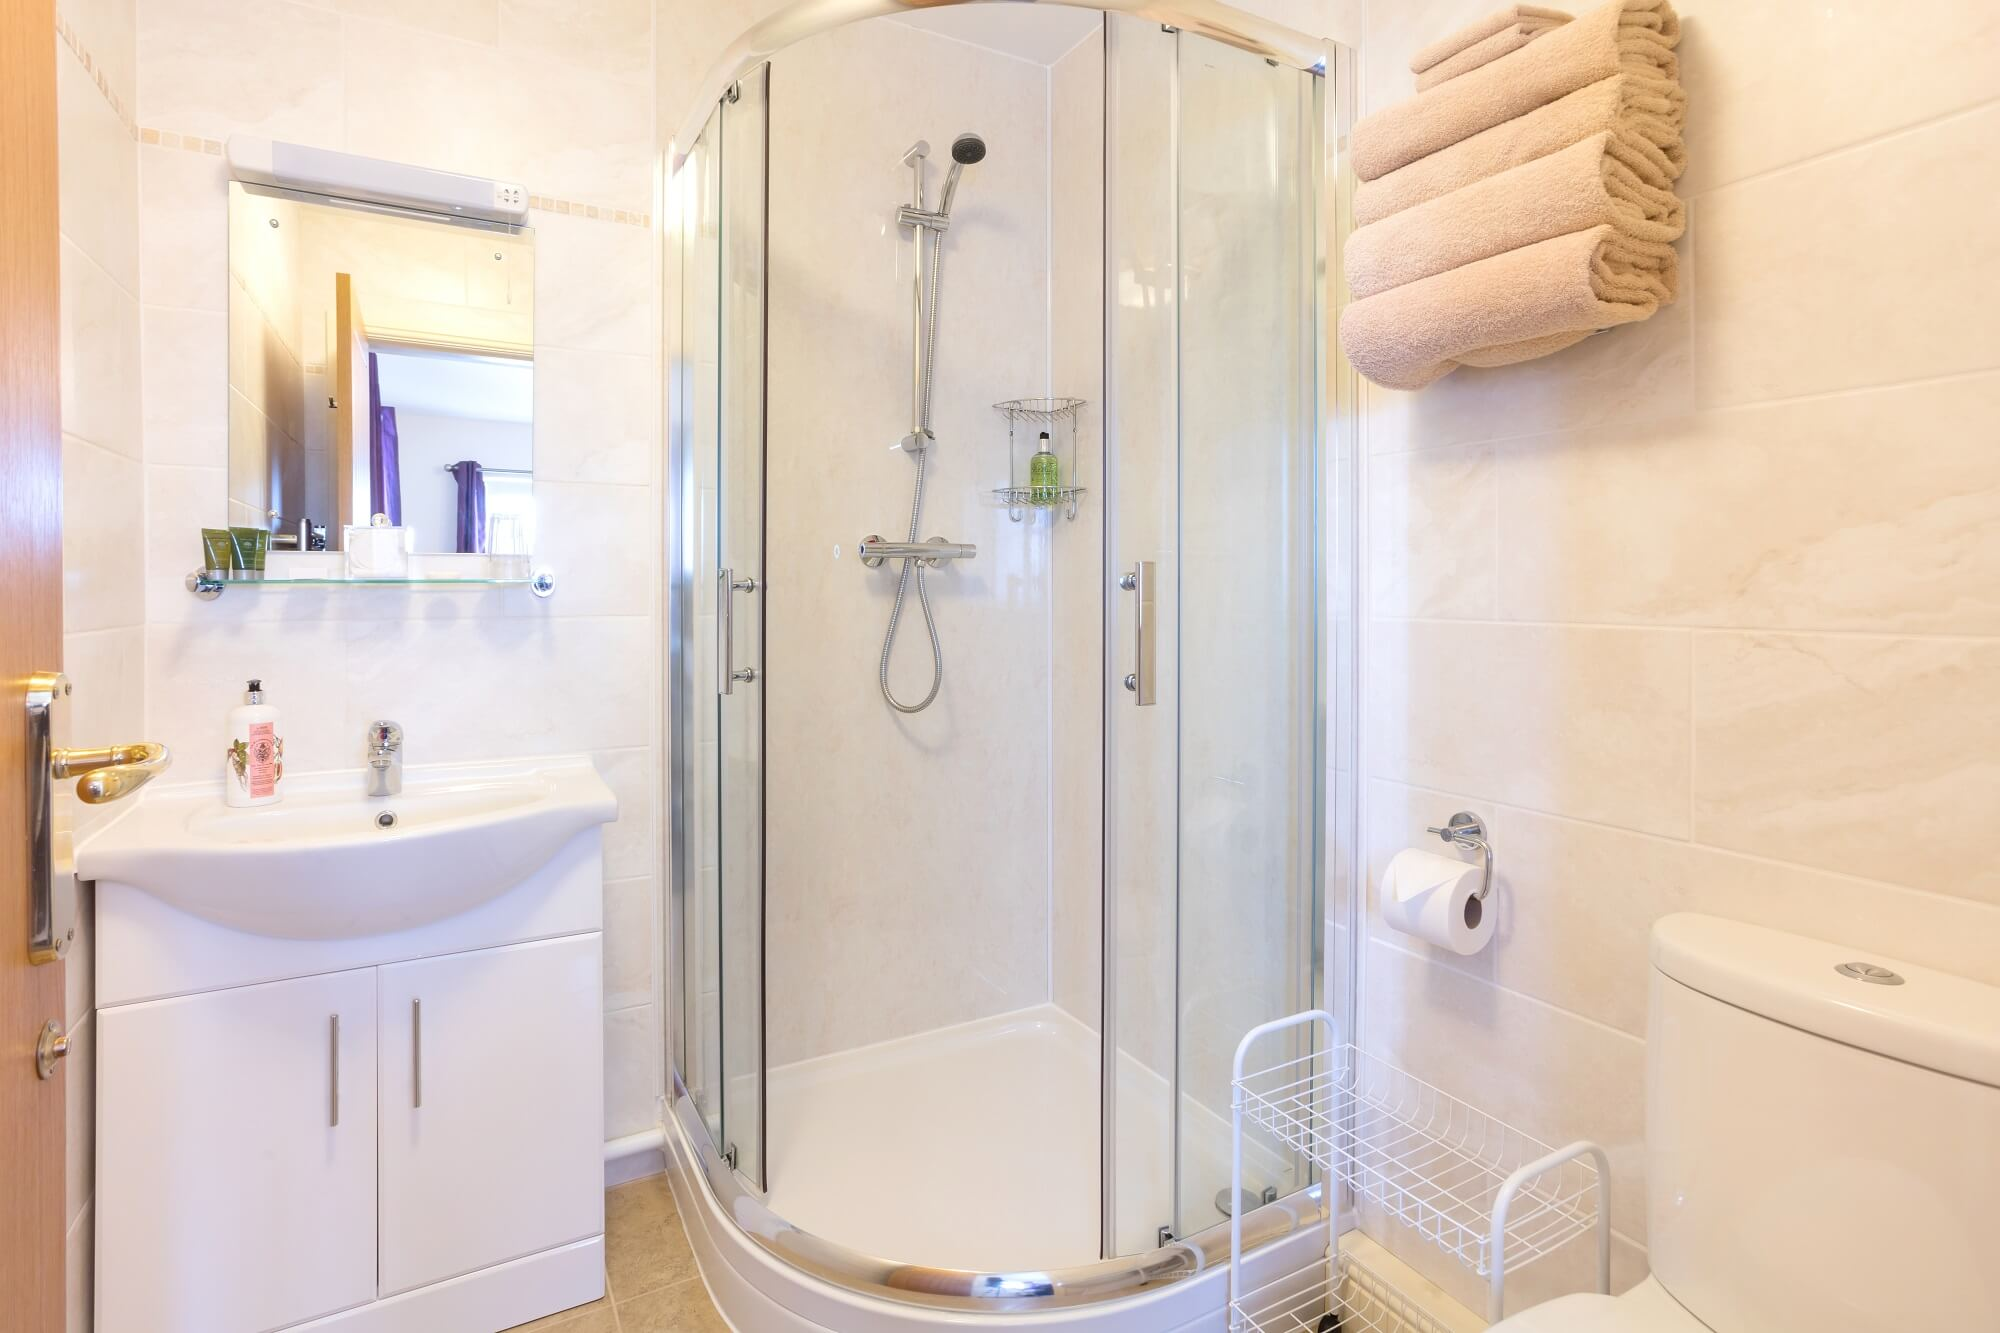 En suite shower room in Suite 2, a room in Redhouse Farm Bed & Breakfast, Lincolnshire